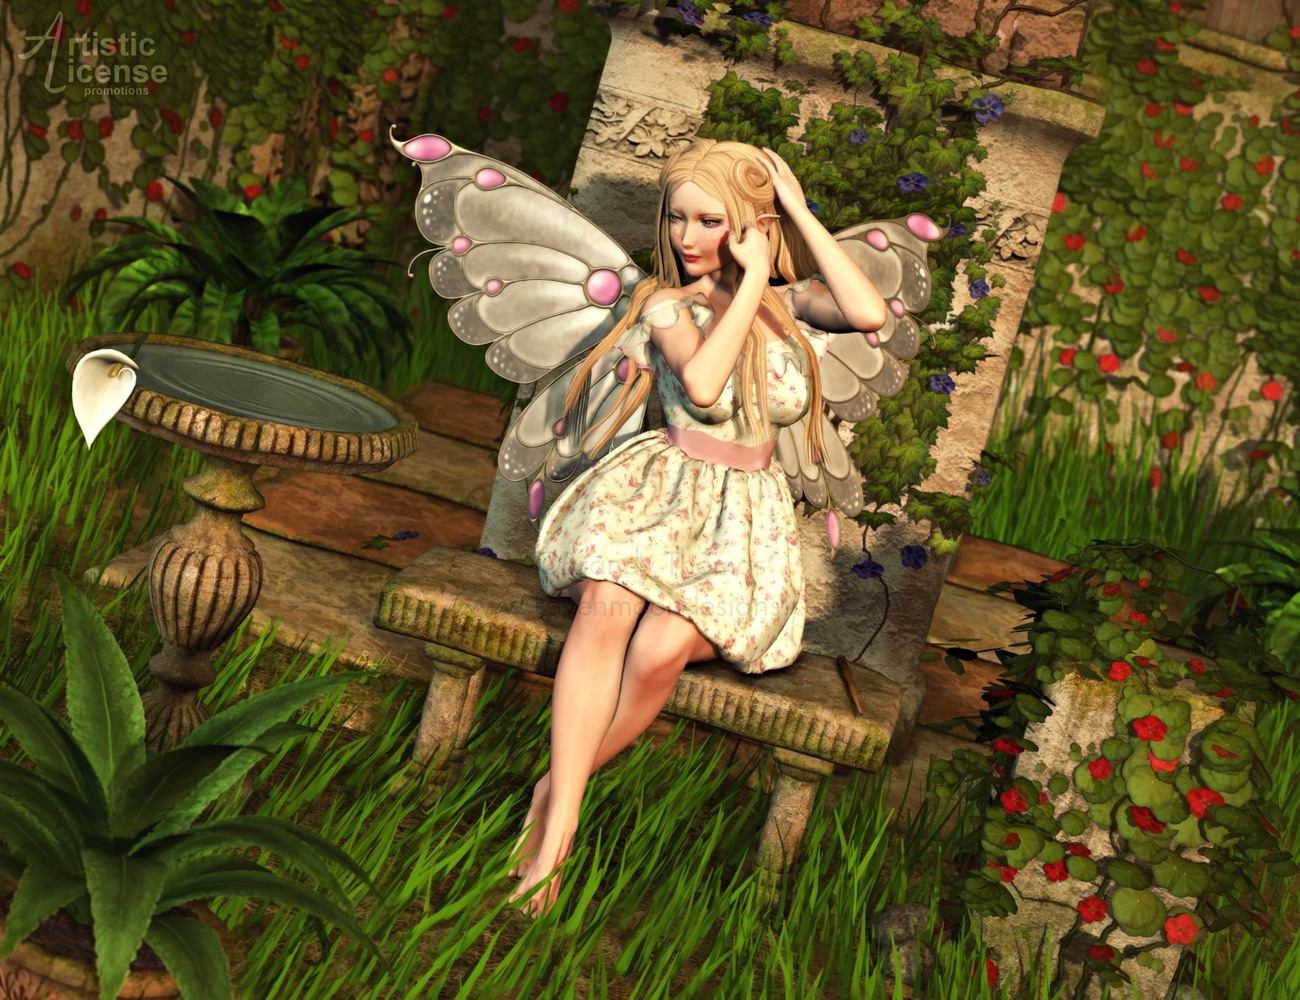 Dynamics 09 - Puffball Dress for Victoria 4 by Lul by Artistic_License